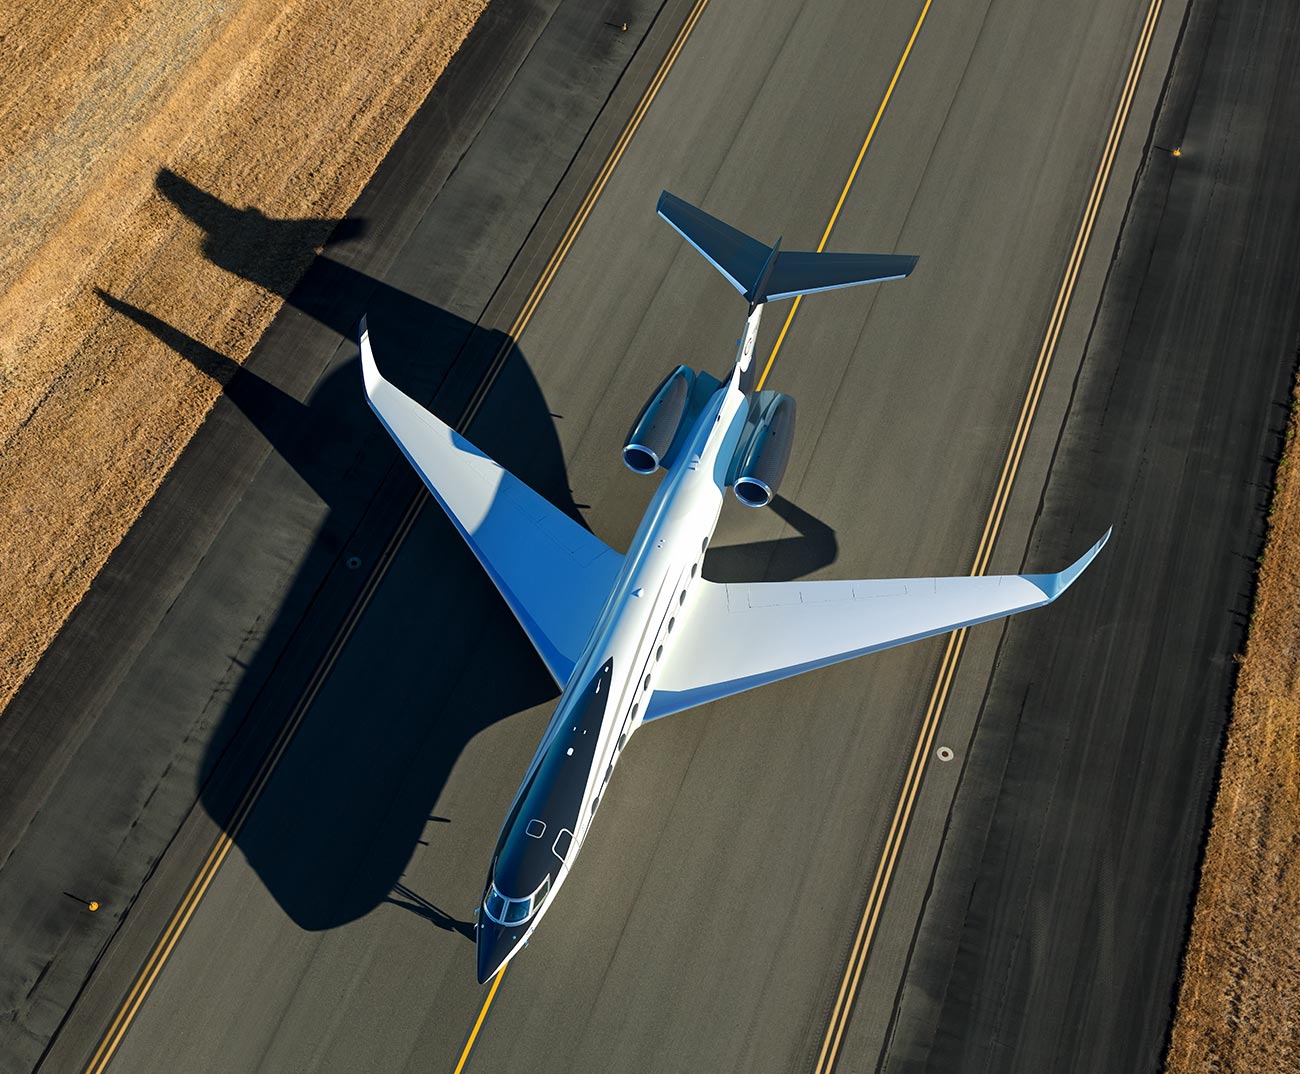 Gulfstream G700 Take-off